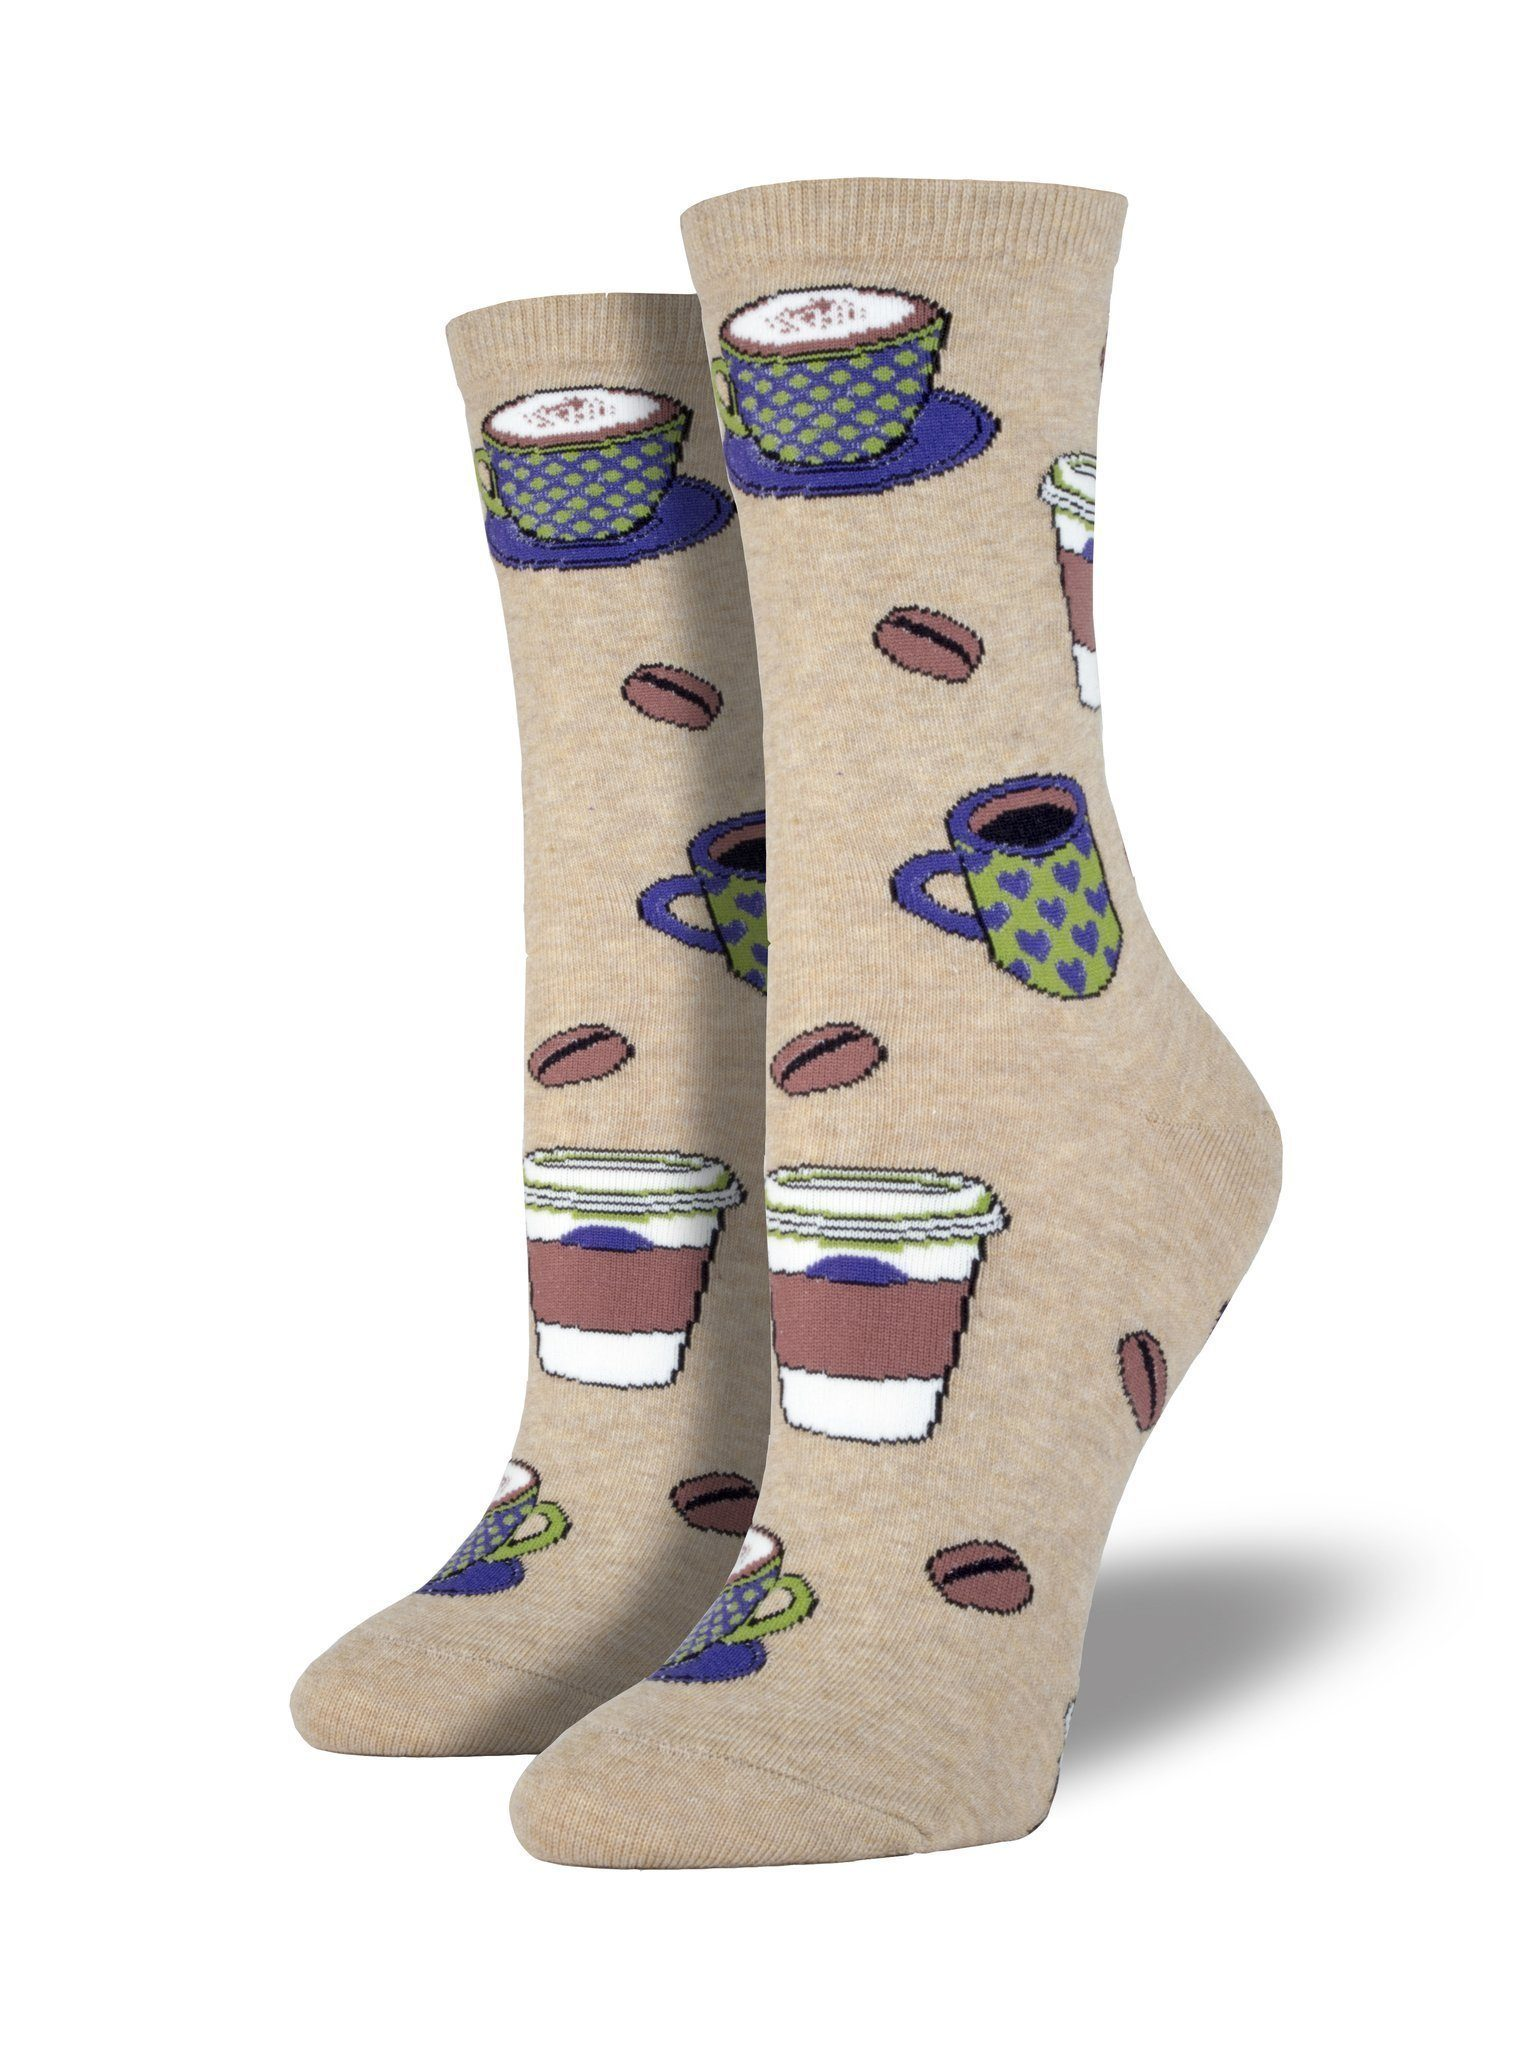 Socksmith - Love You a Latte Crew Socks | Women's - Knock Your Socks Off